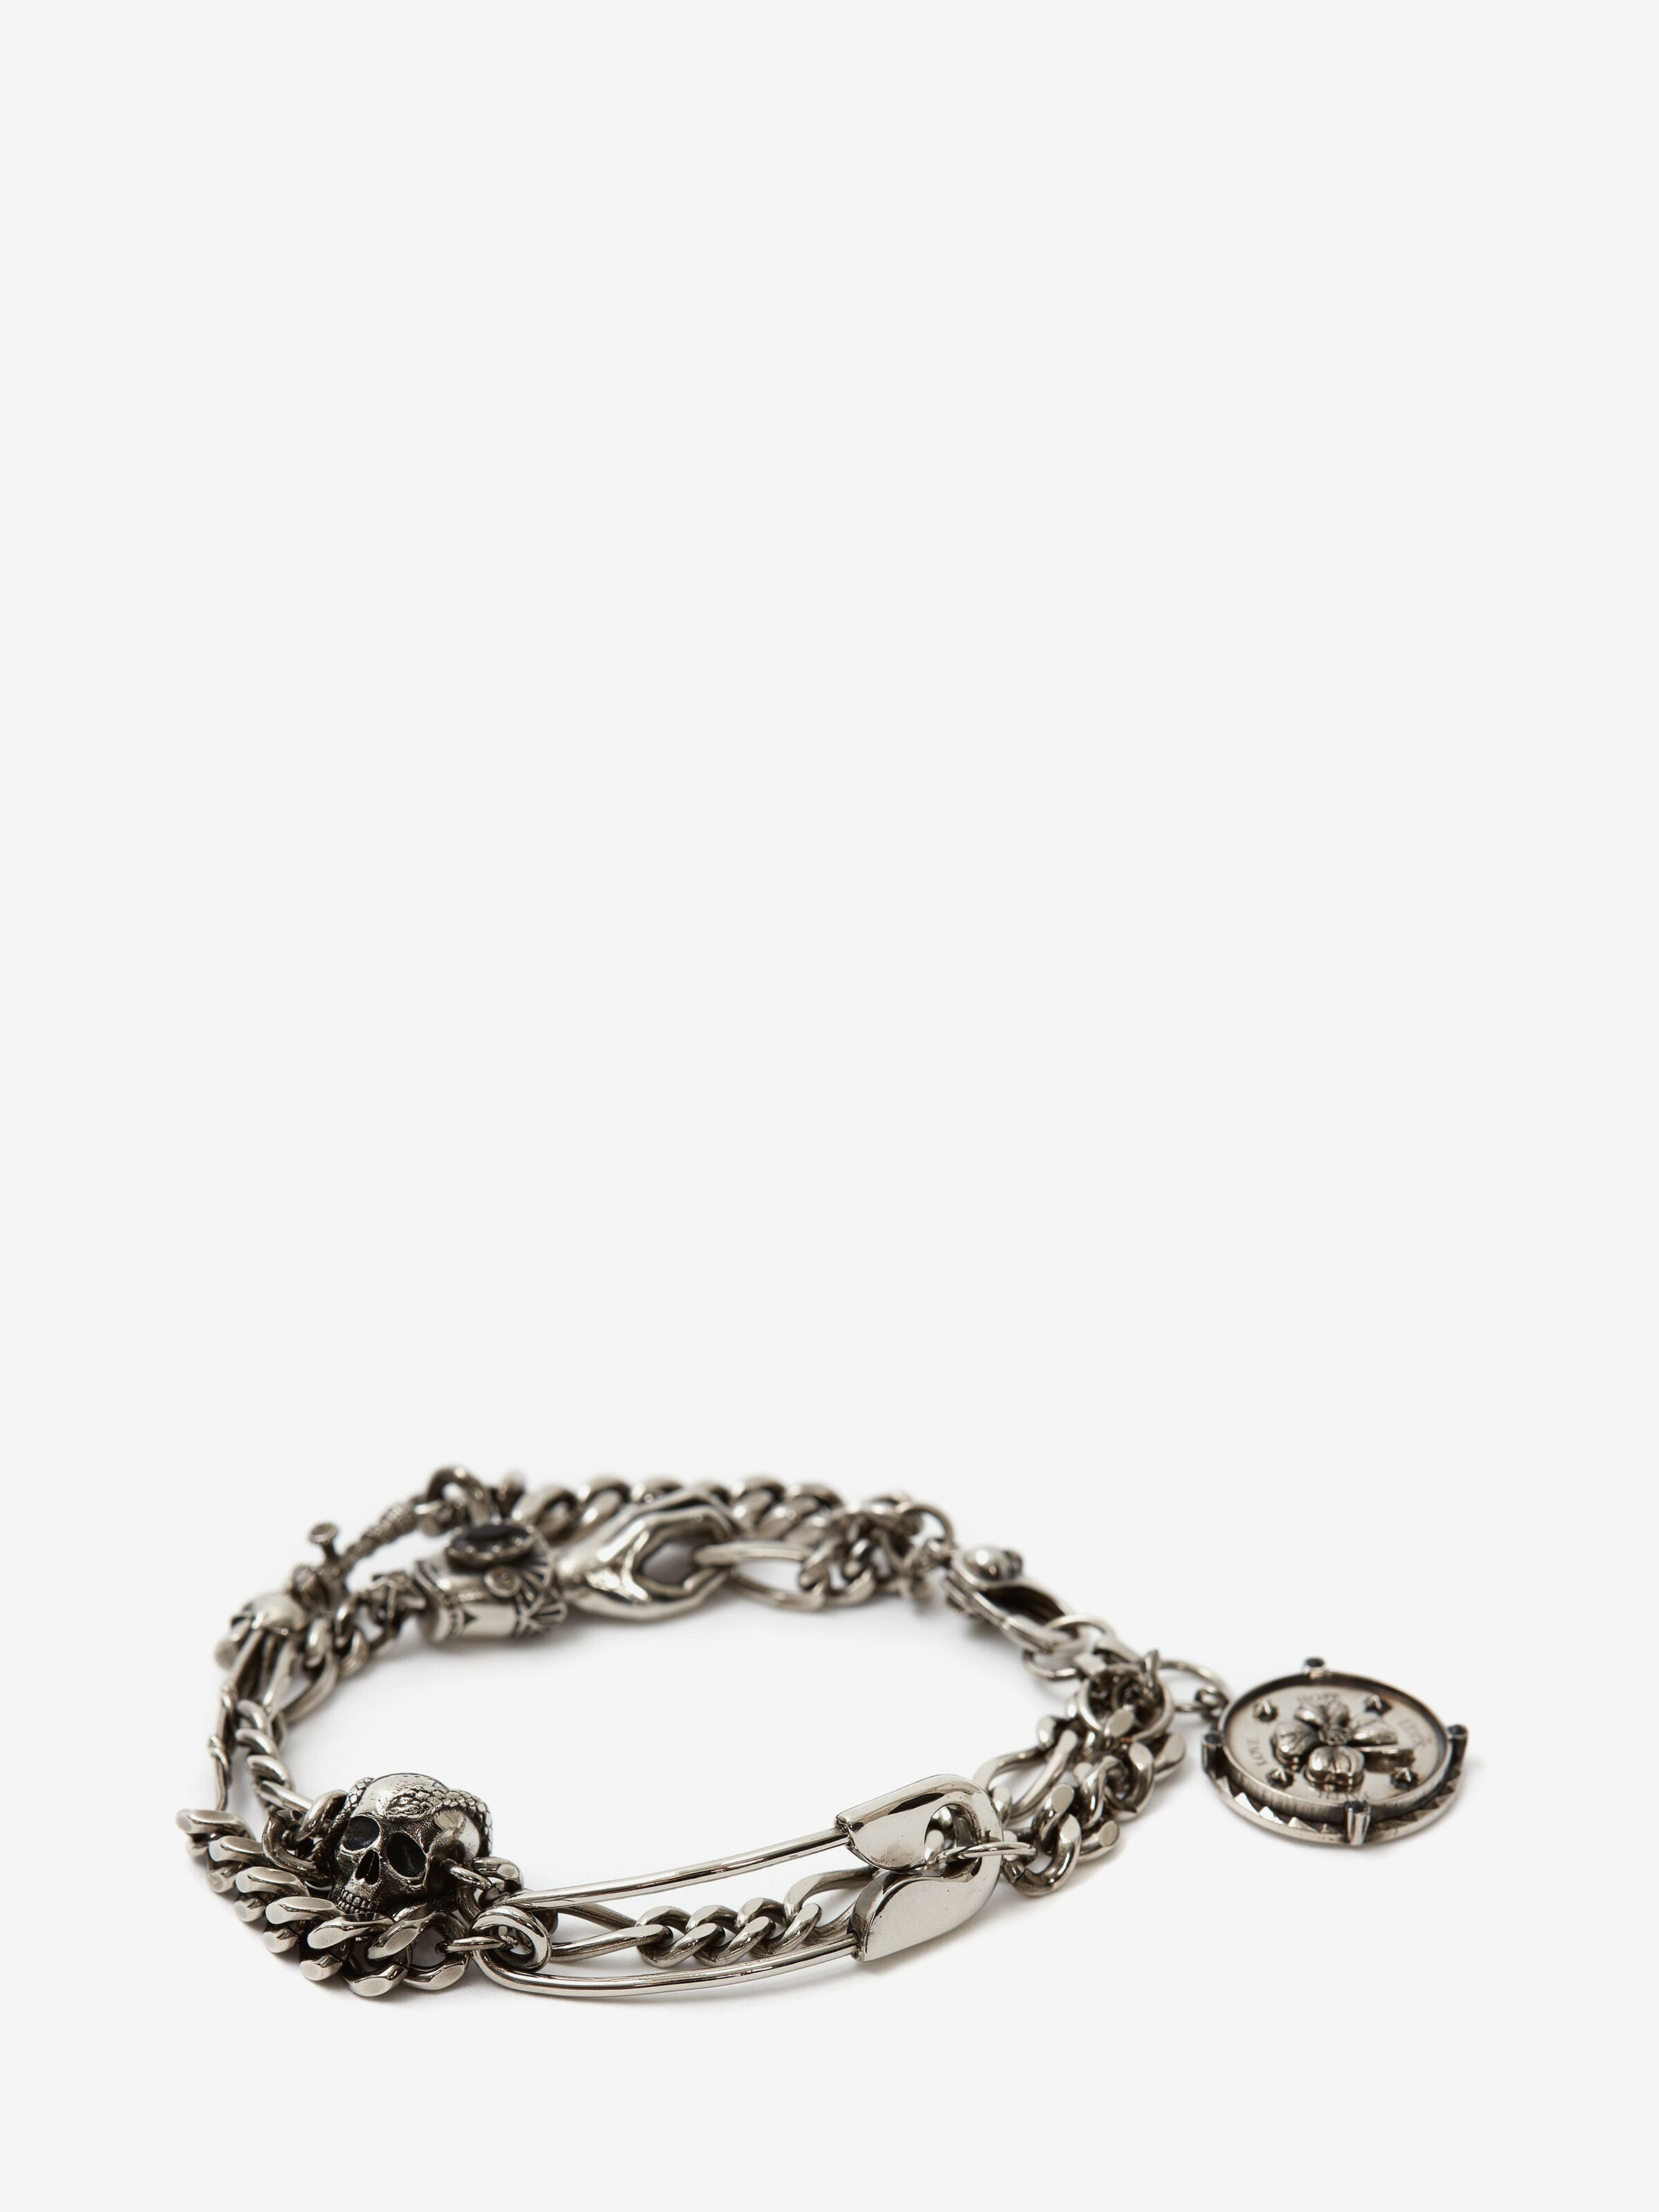 Alexander Mcqueen SAFETY PIN AND MEDALLION CHAIN BRACELET